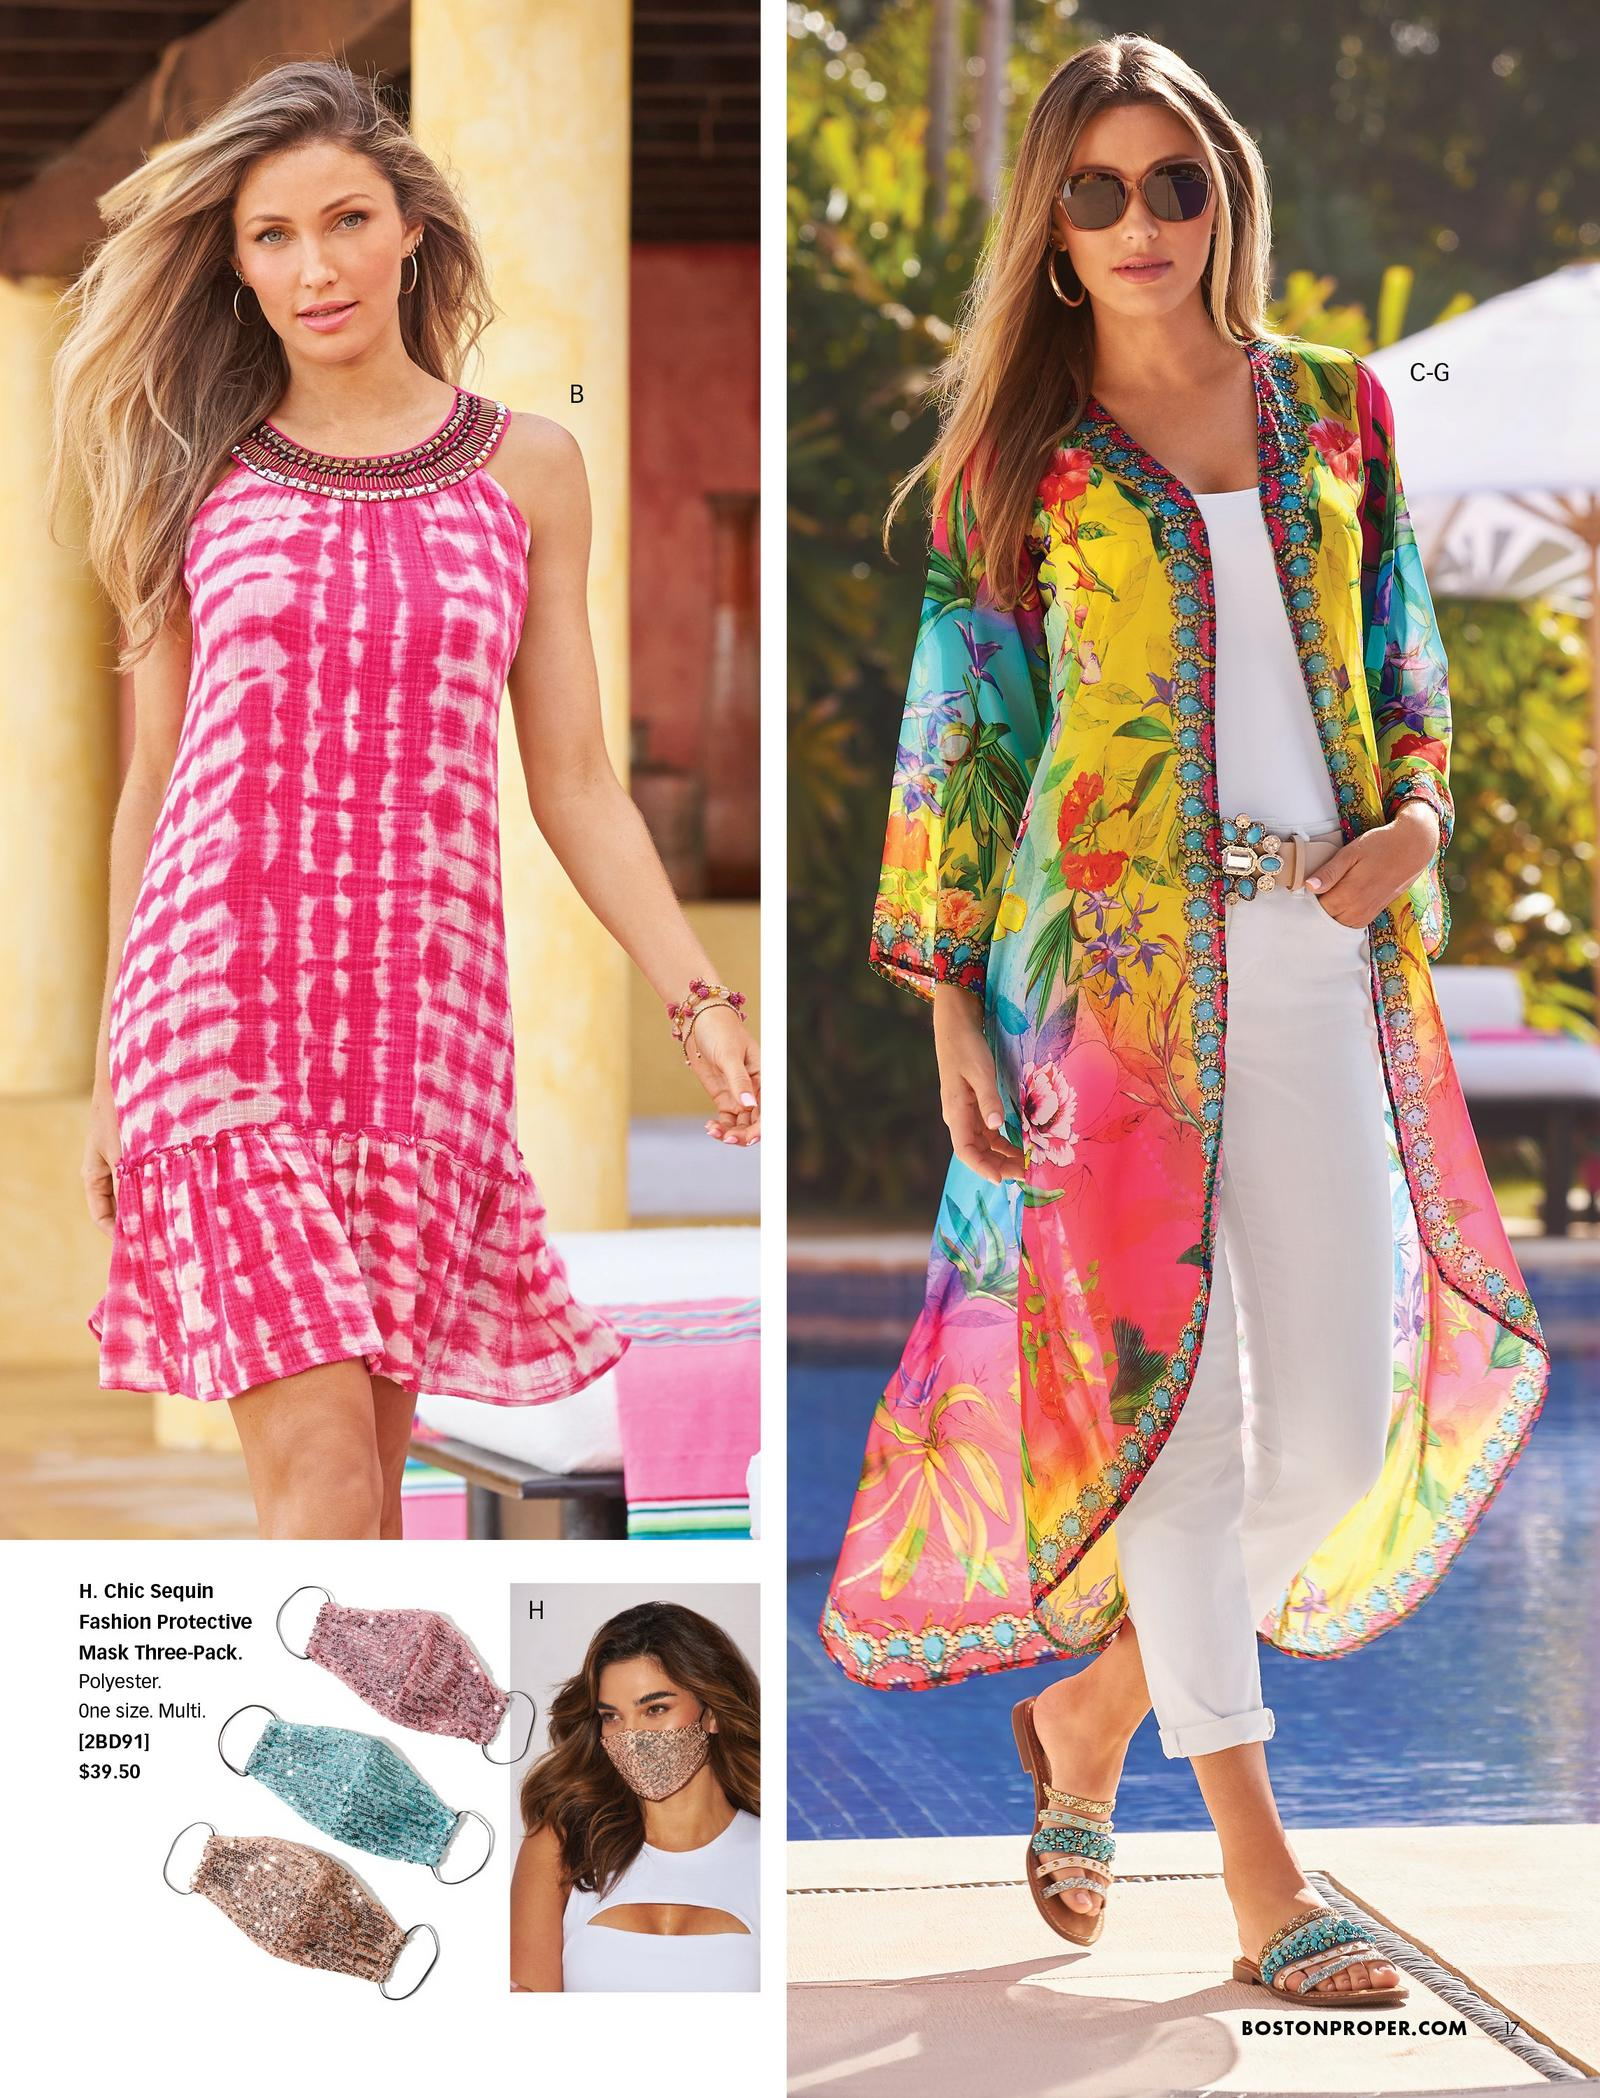 left model wearing a pink tie-dye embellished neckline sleeveless shift dress. right model wearing a multicolored floral embellished duster, white tank top, turquoise embellished belt, white jeans, turquoise studded sandals, and sunglasses. also shown: glitter face masks in pink, gold, and blue.